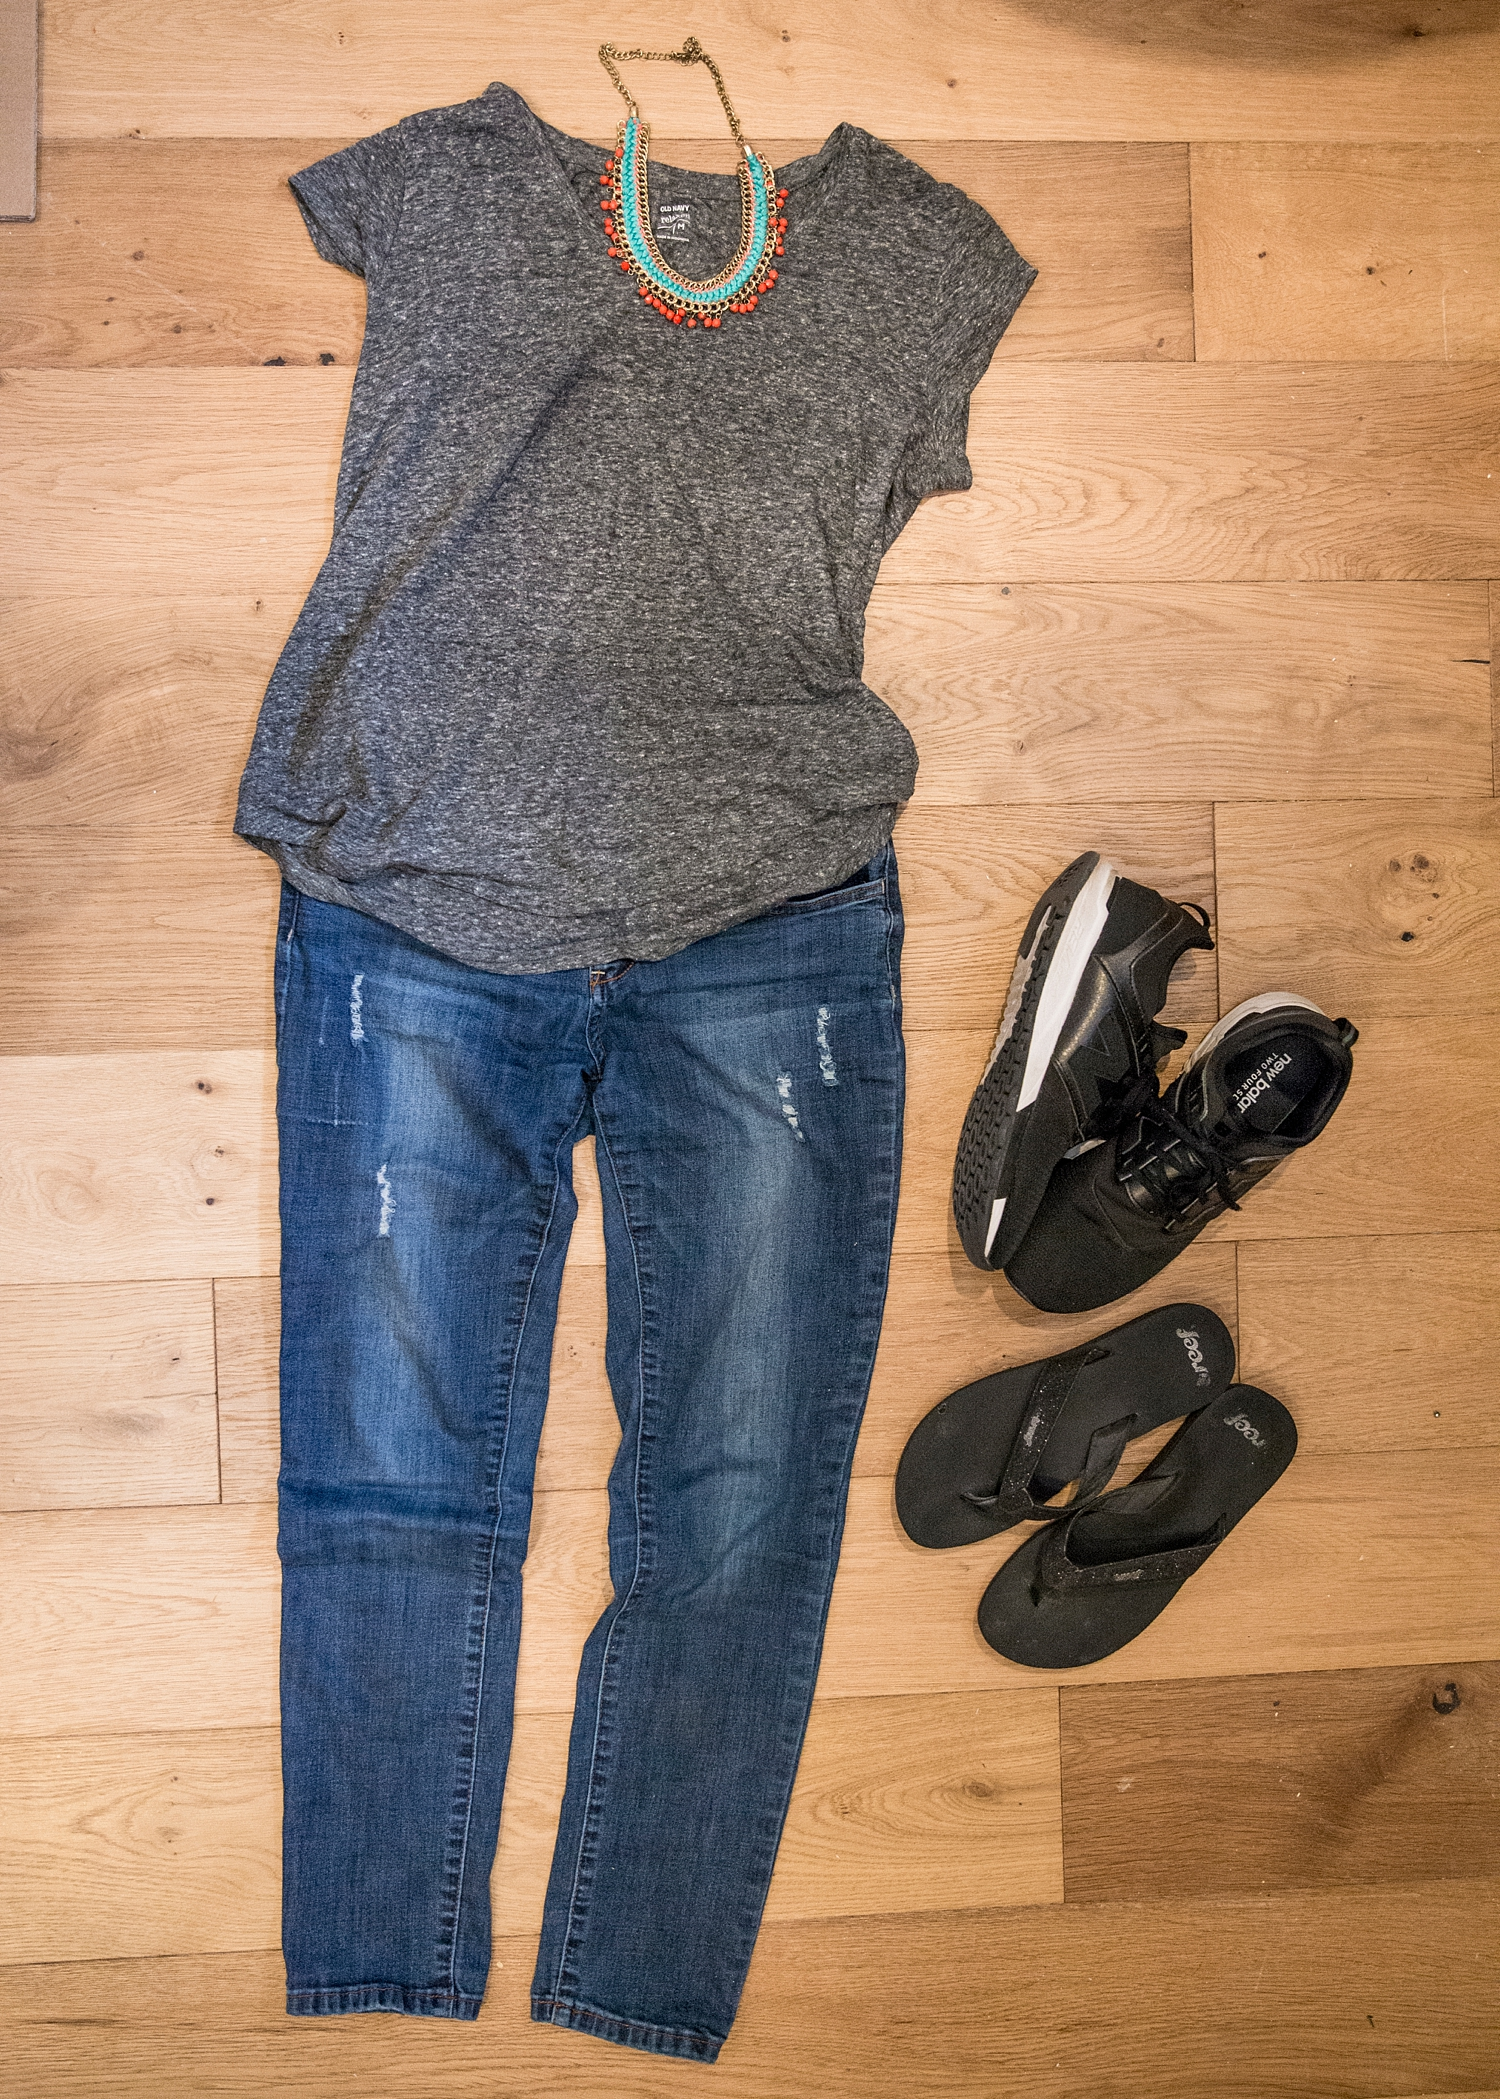 Spring outfit ideas for women over 40--CUTE IDEAS! Check out more on Getting Unschooled :)